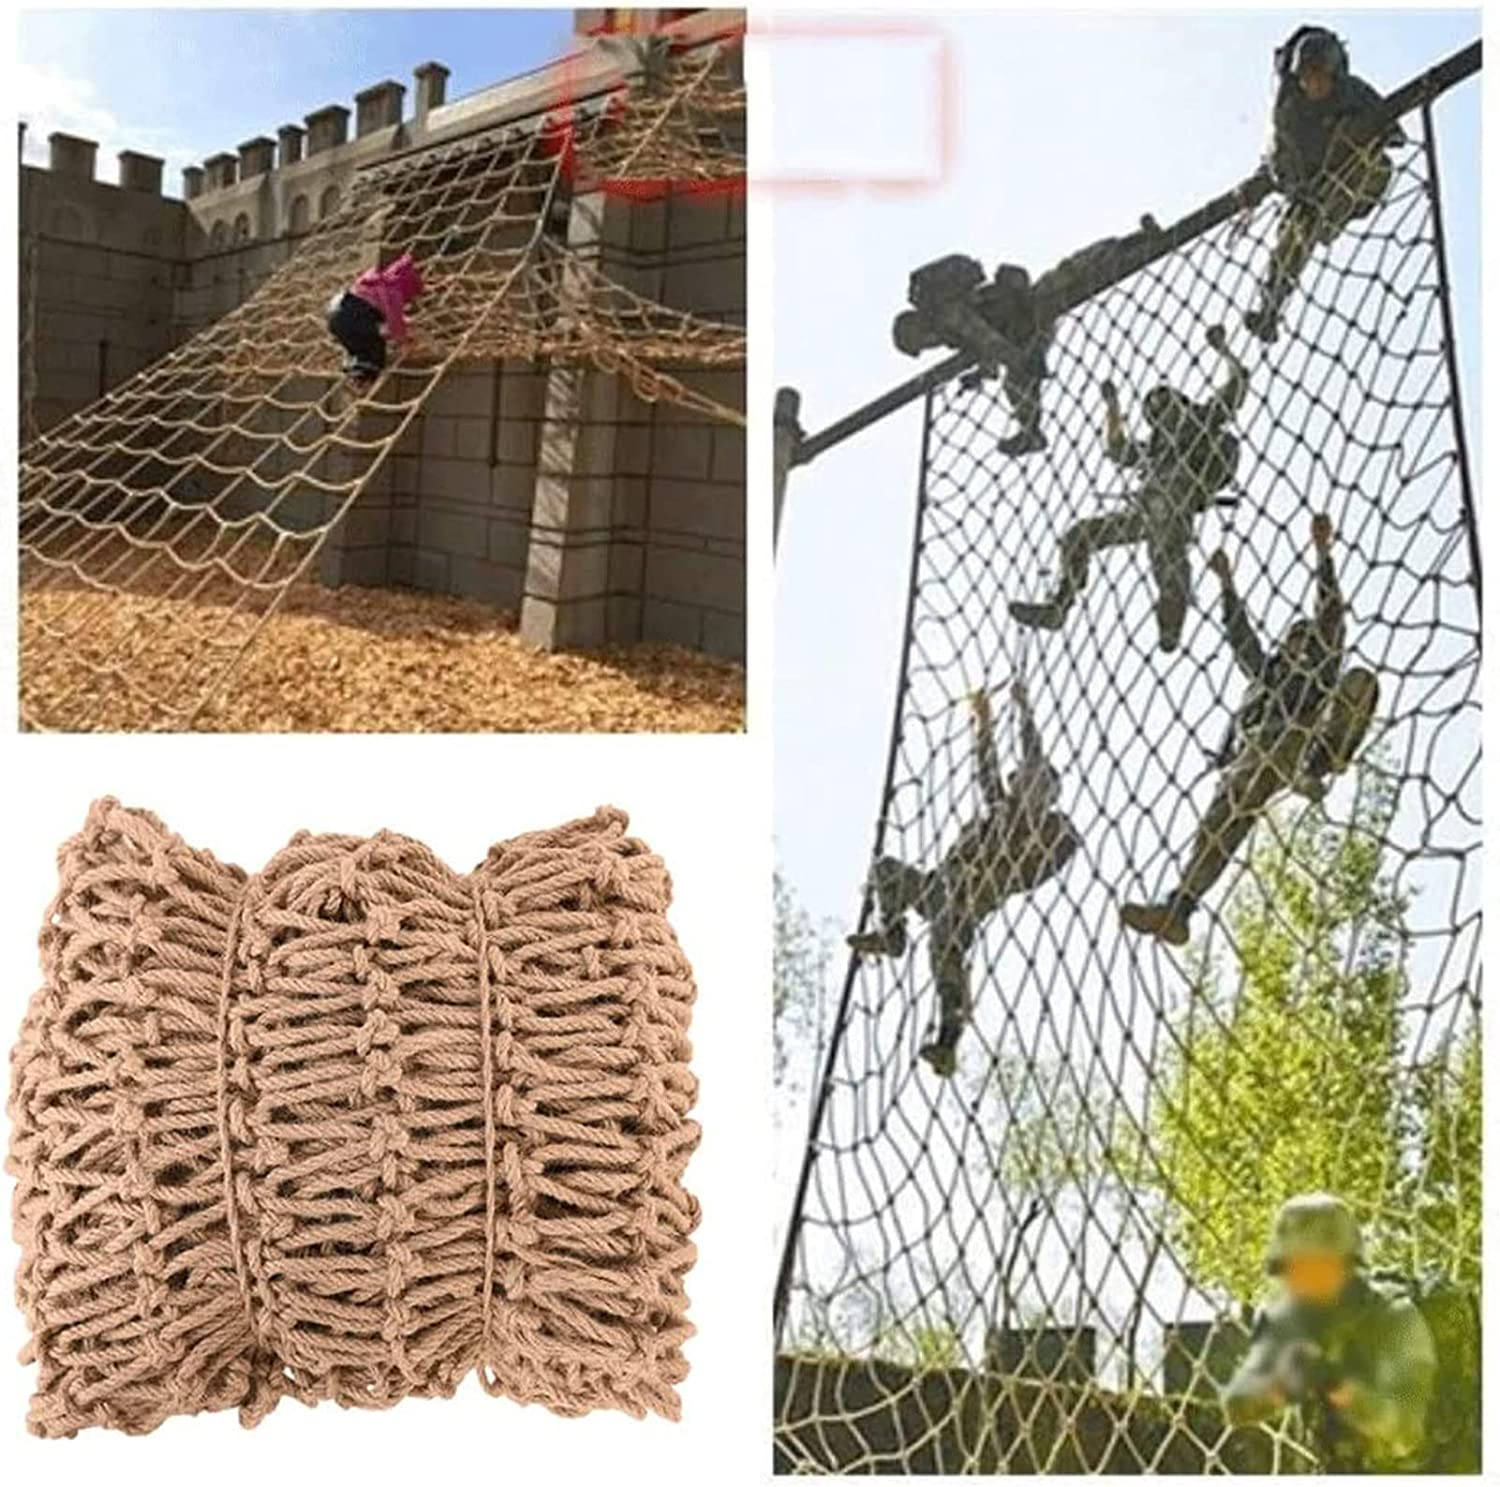 BNMY Climbing Net for Max 47% OFF Kids Fence Child Elegant Swing Netting Safety